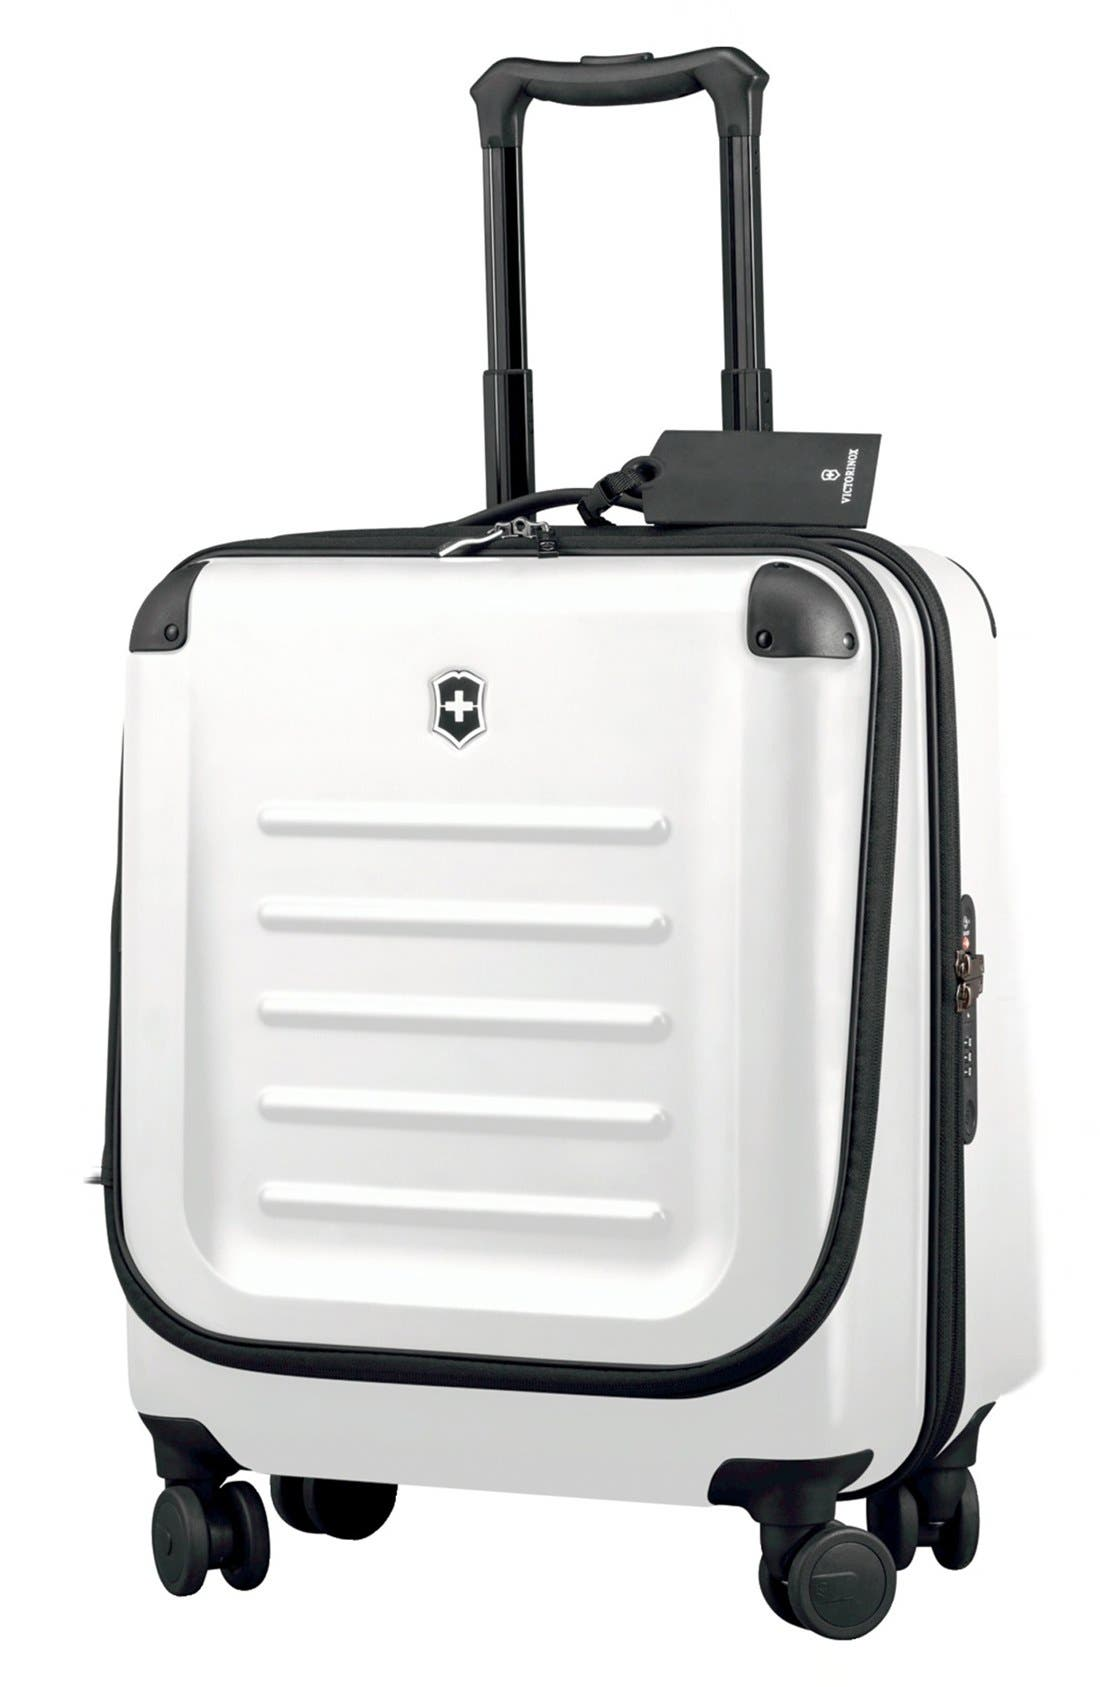 Alternate Image 1 Selected - Victorinox Swiss Army® Spectra 2.0 Hard Sided Rolling Carry-On (22 inch)